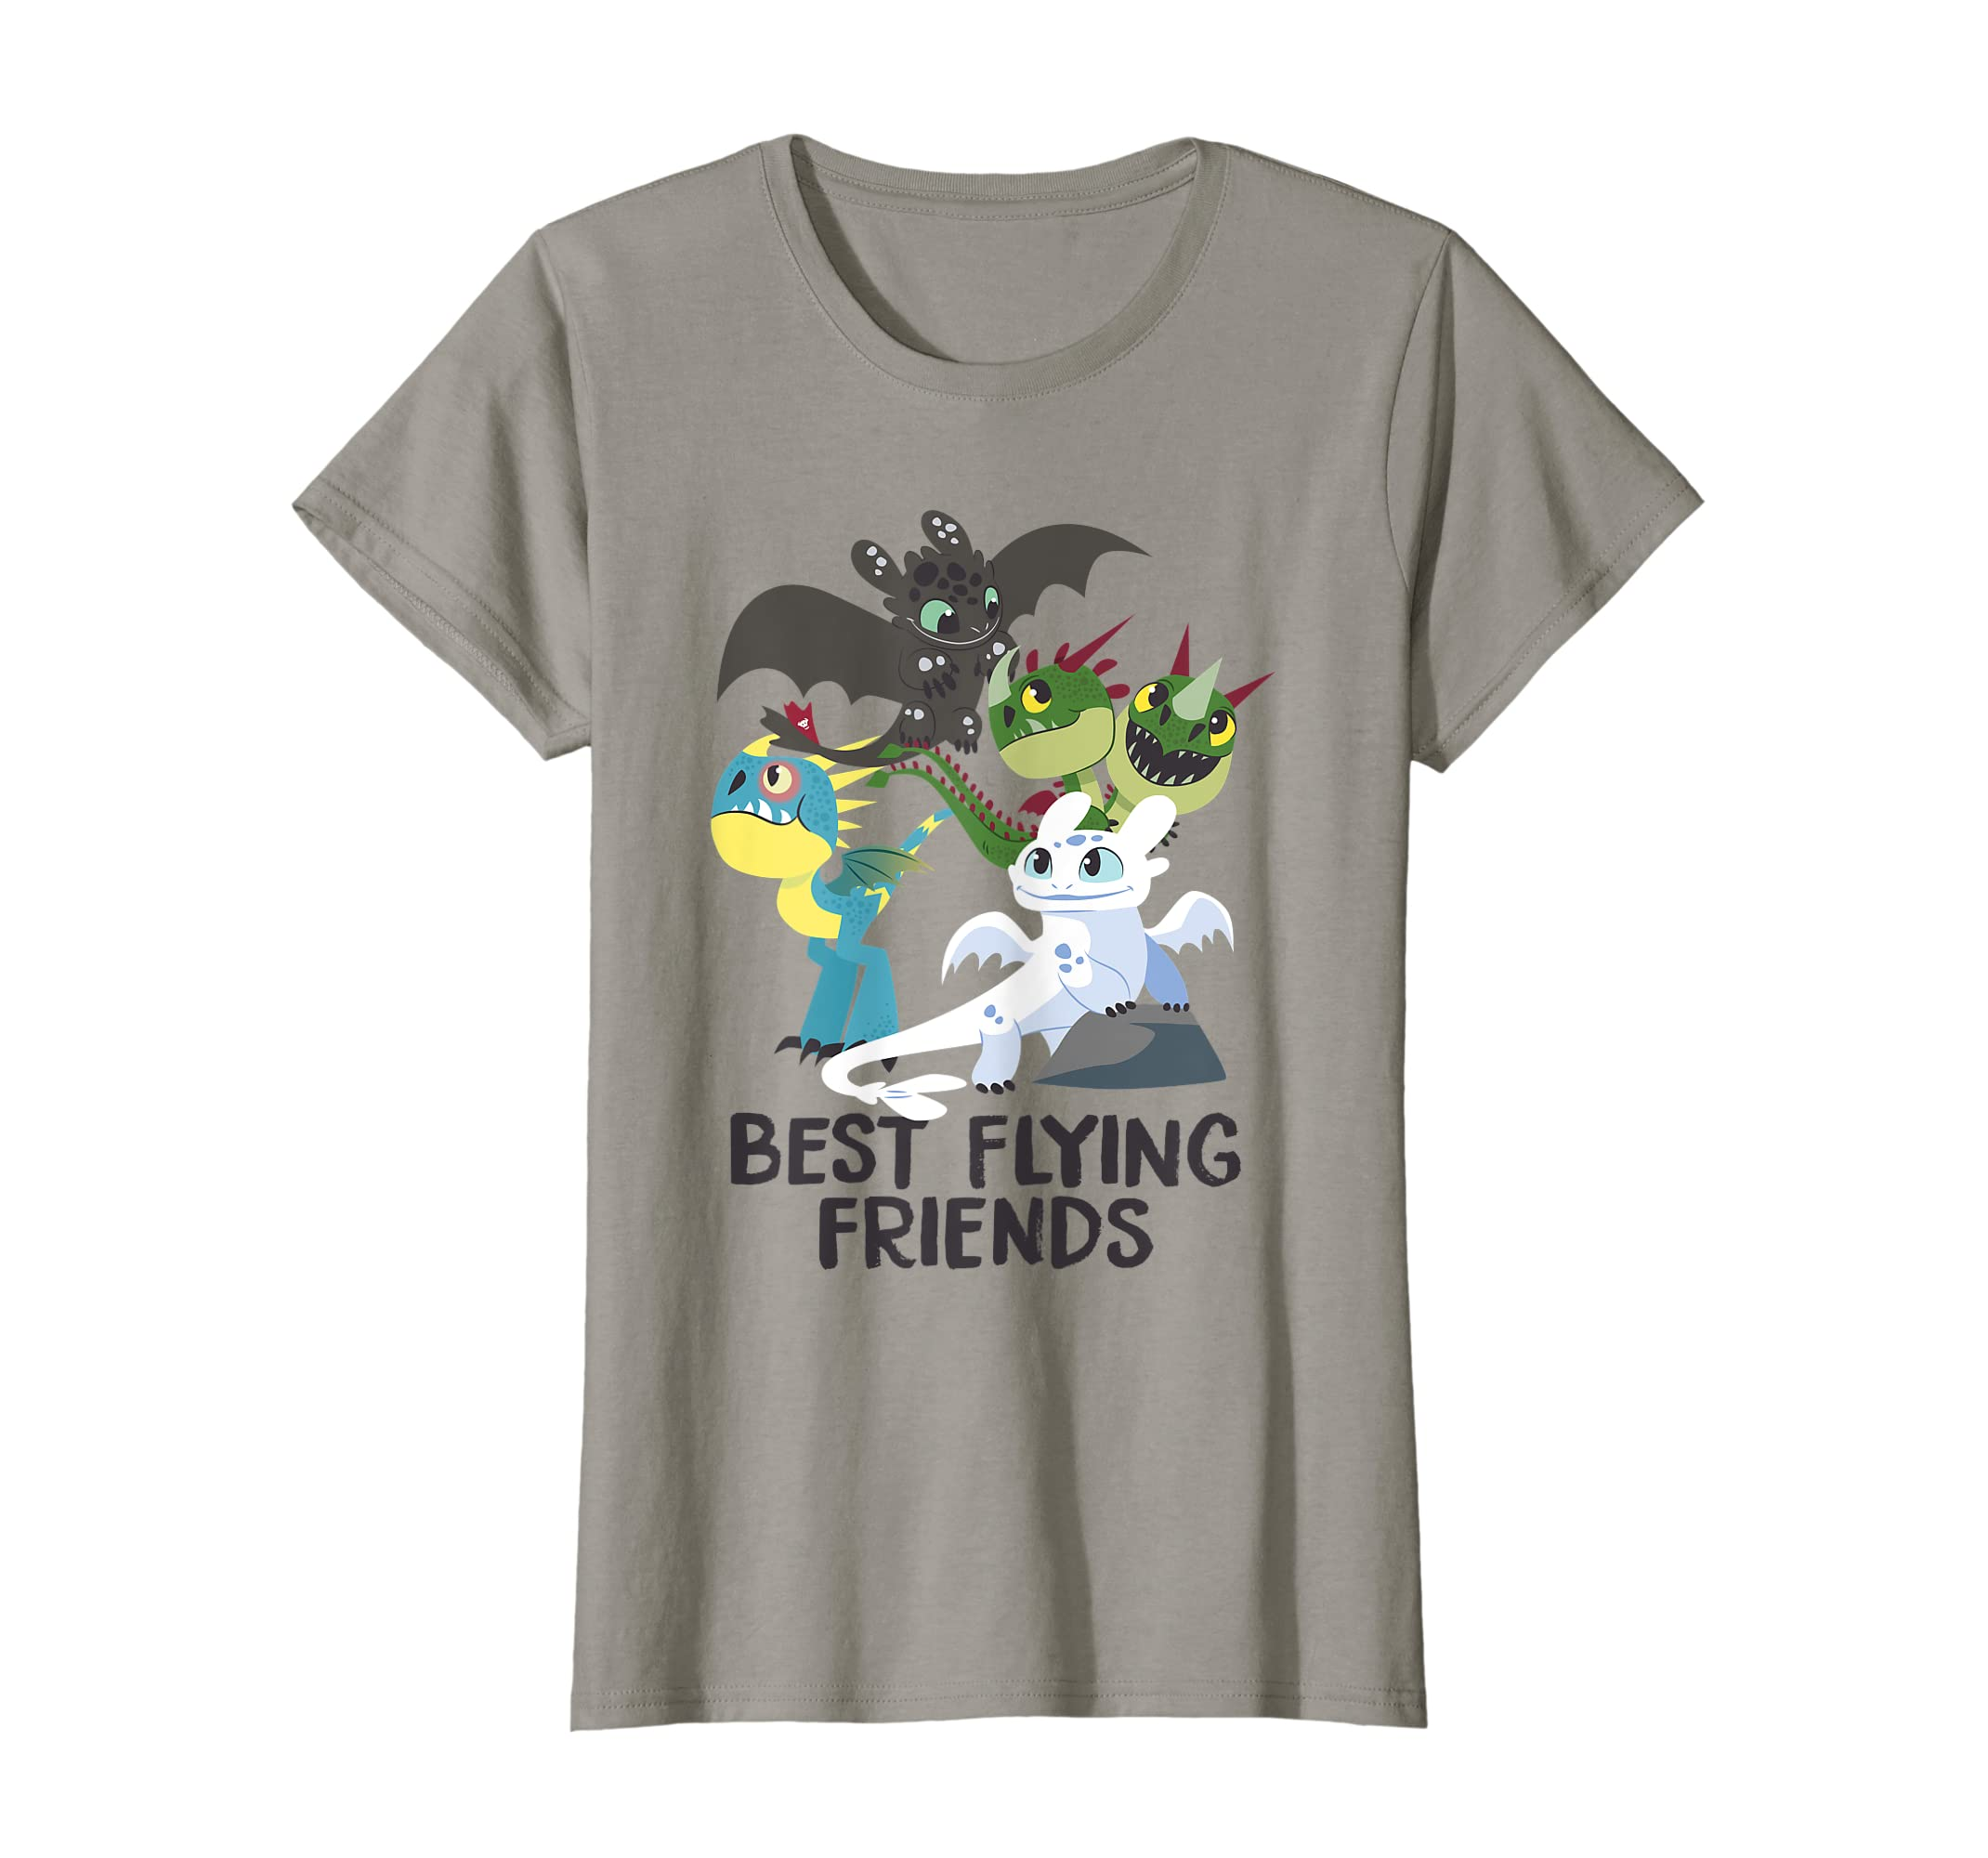 cb9611b3 Amazon.com: DreamWorks How To Train Your Dragon 3 Best Friends T-shirt:  Clothing